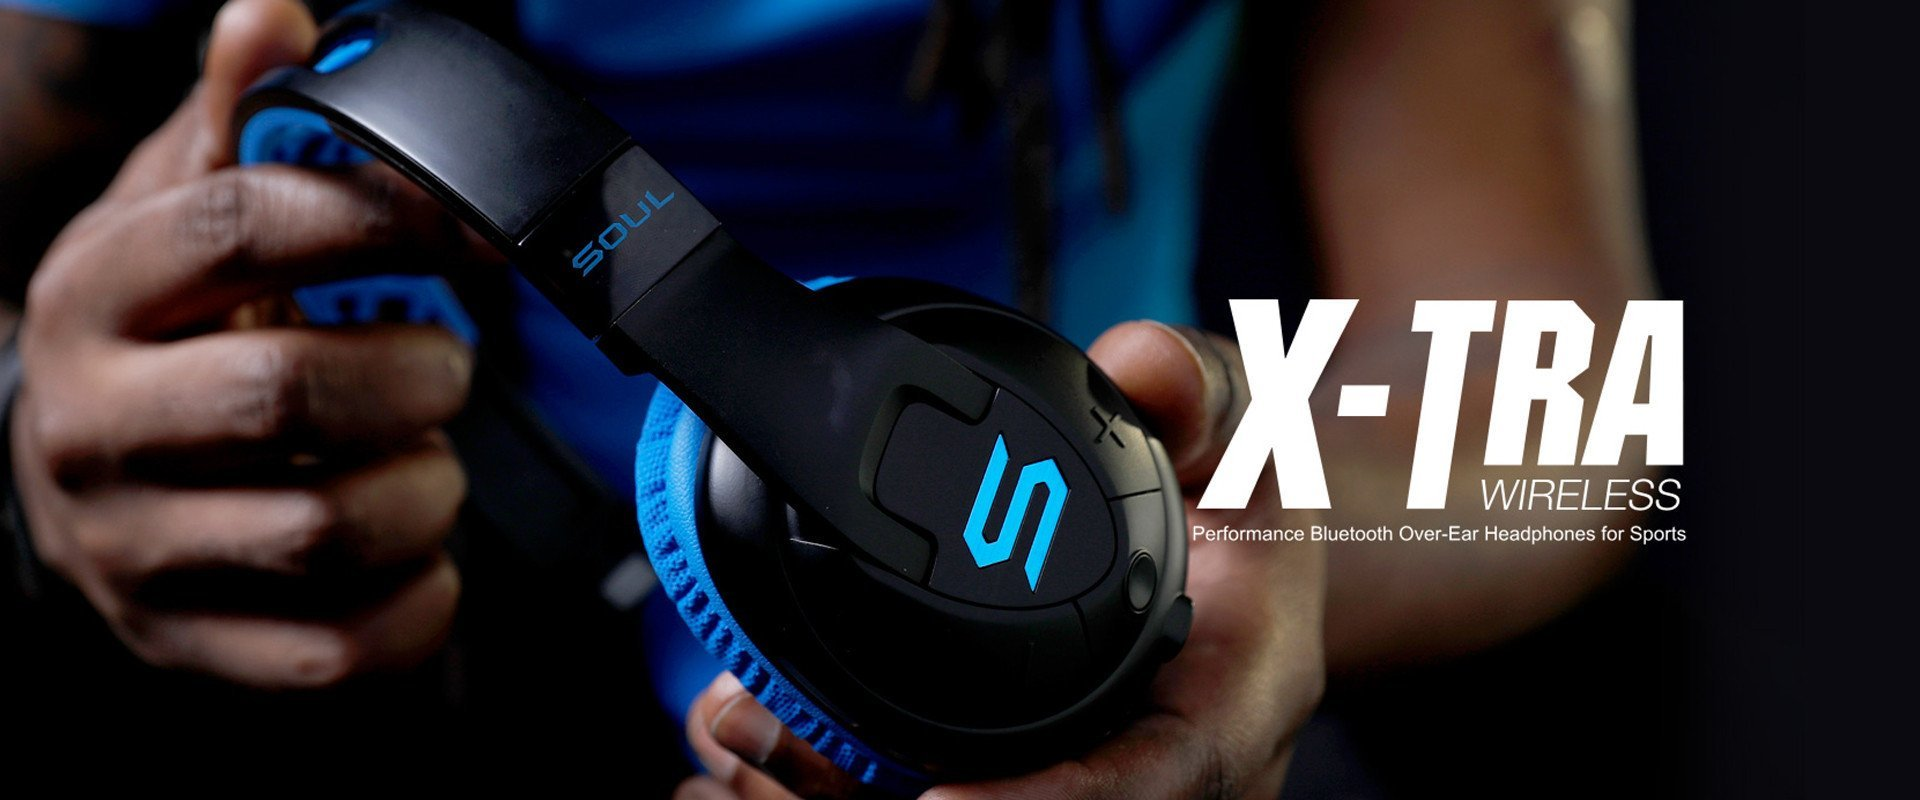 RUN FREE PRO HD bluetooth wireless earphones for sports